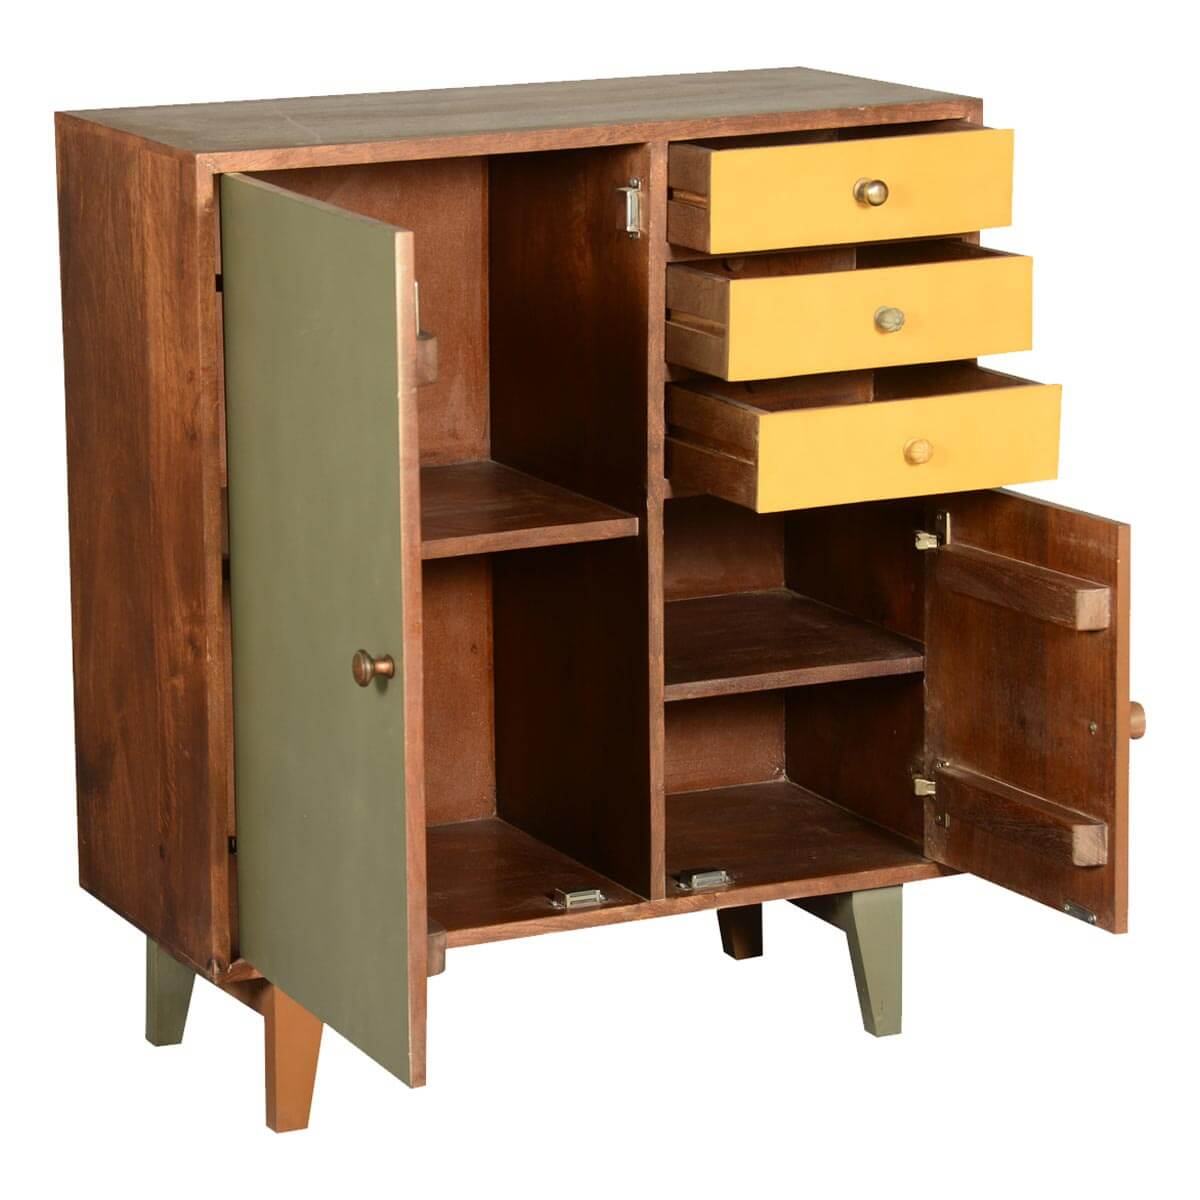 Smyrna 60 S Retro Mango Wood 3 Drawer Freestanding Storage